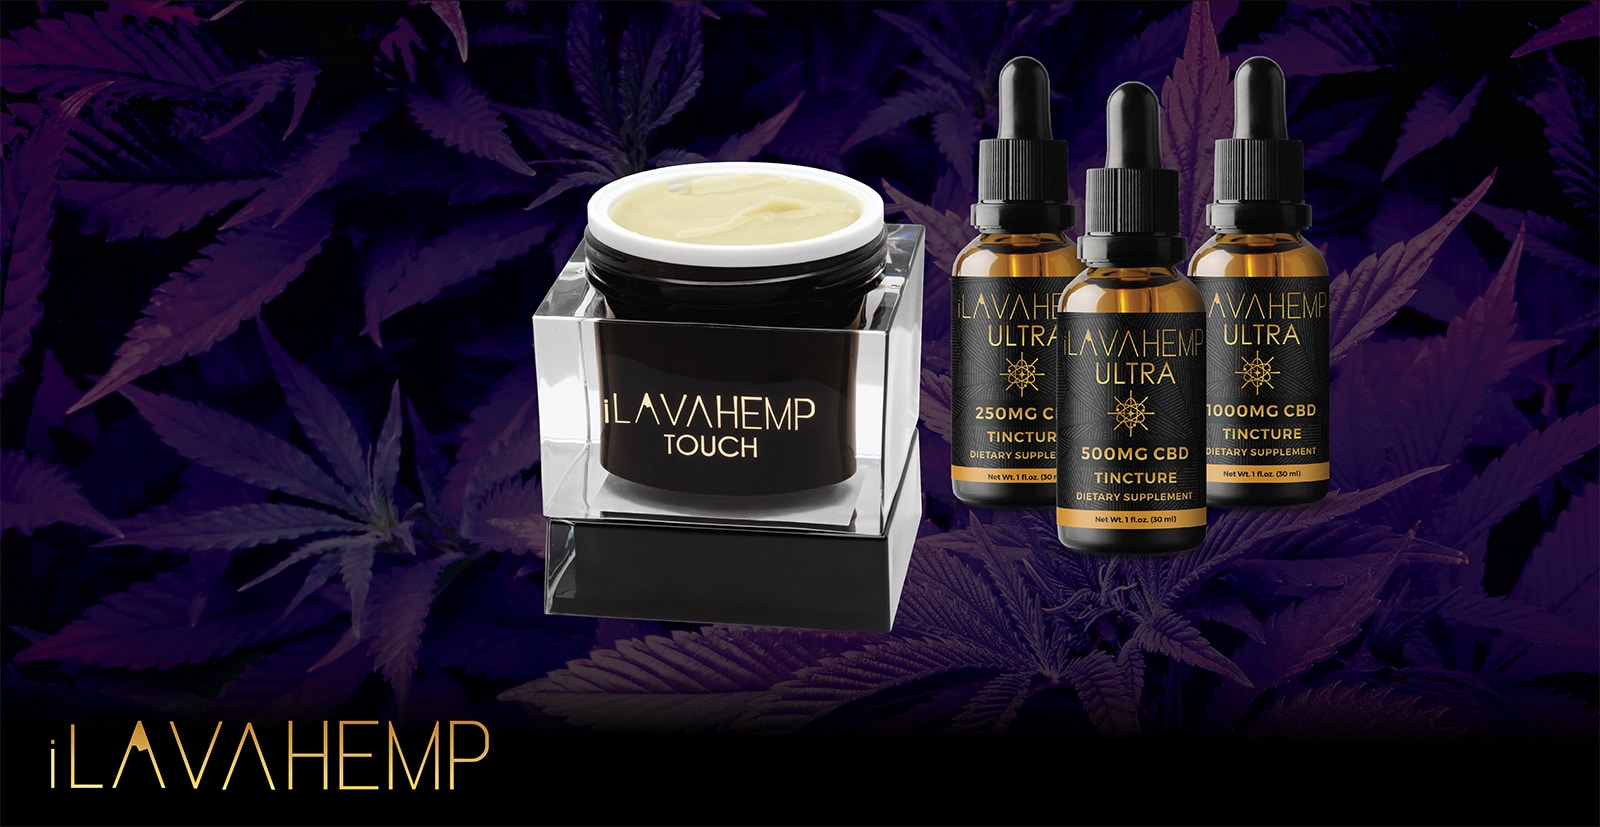 CBD cream and CBD tinctures from ilavahemp